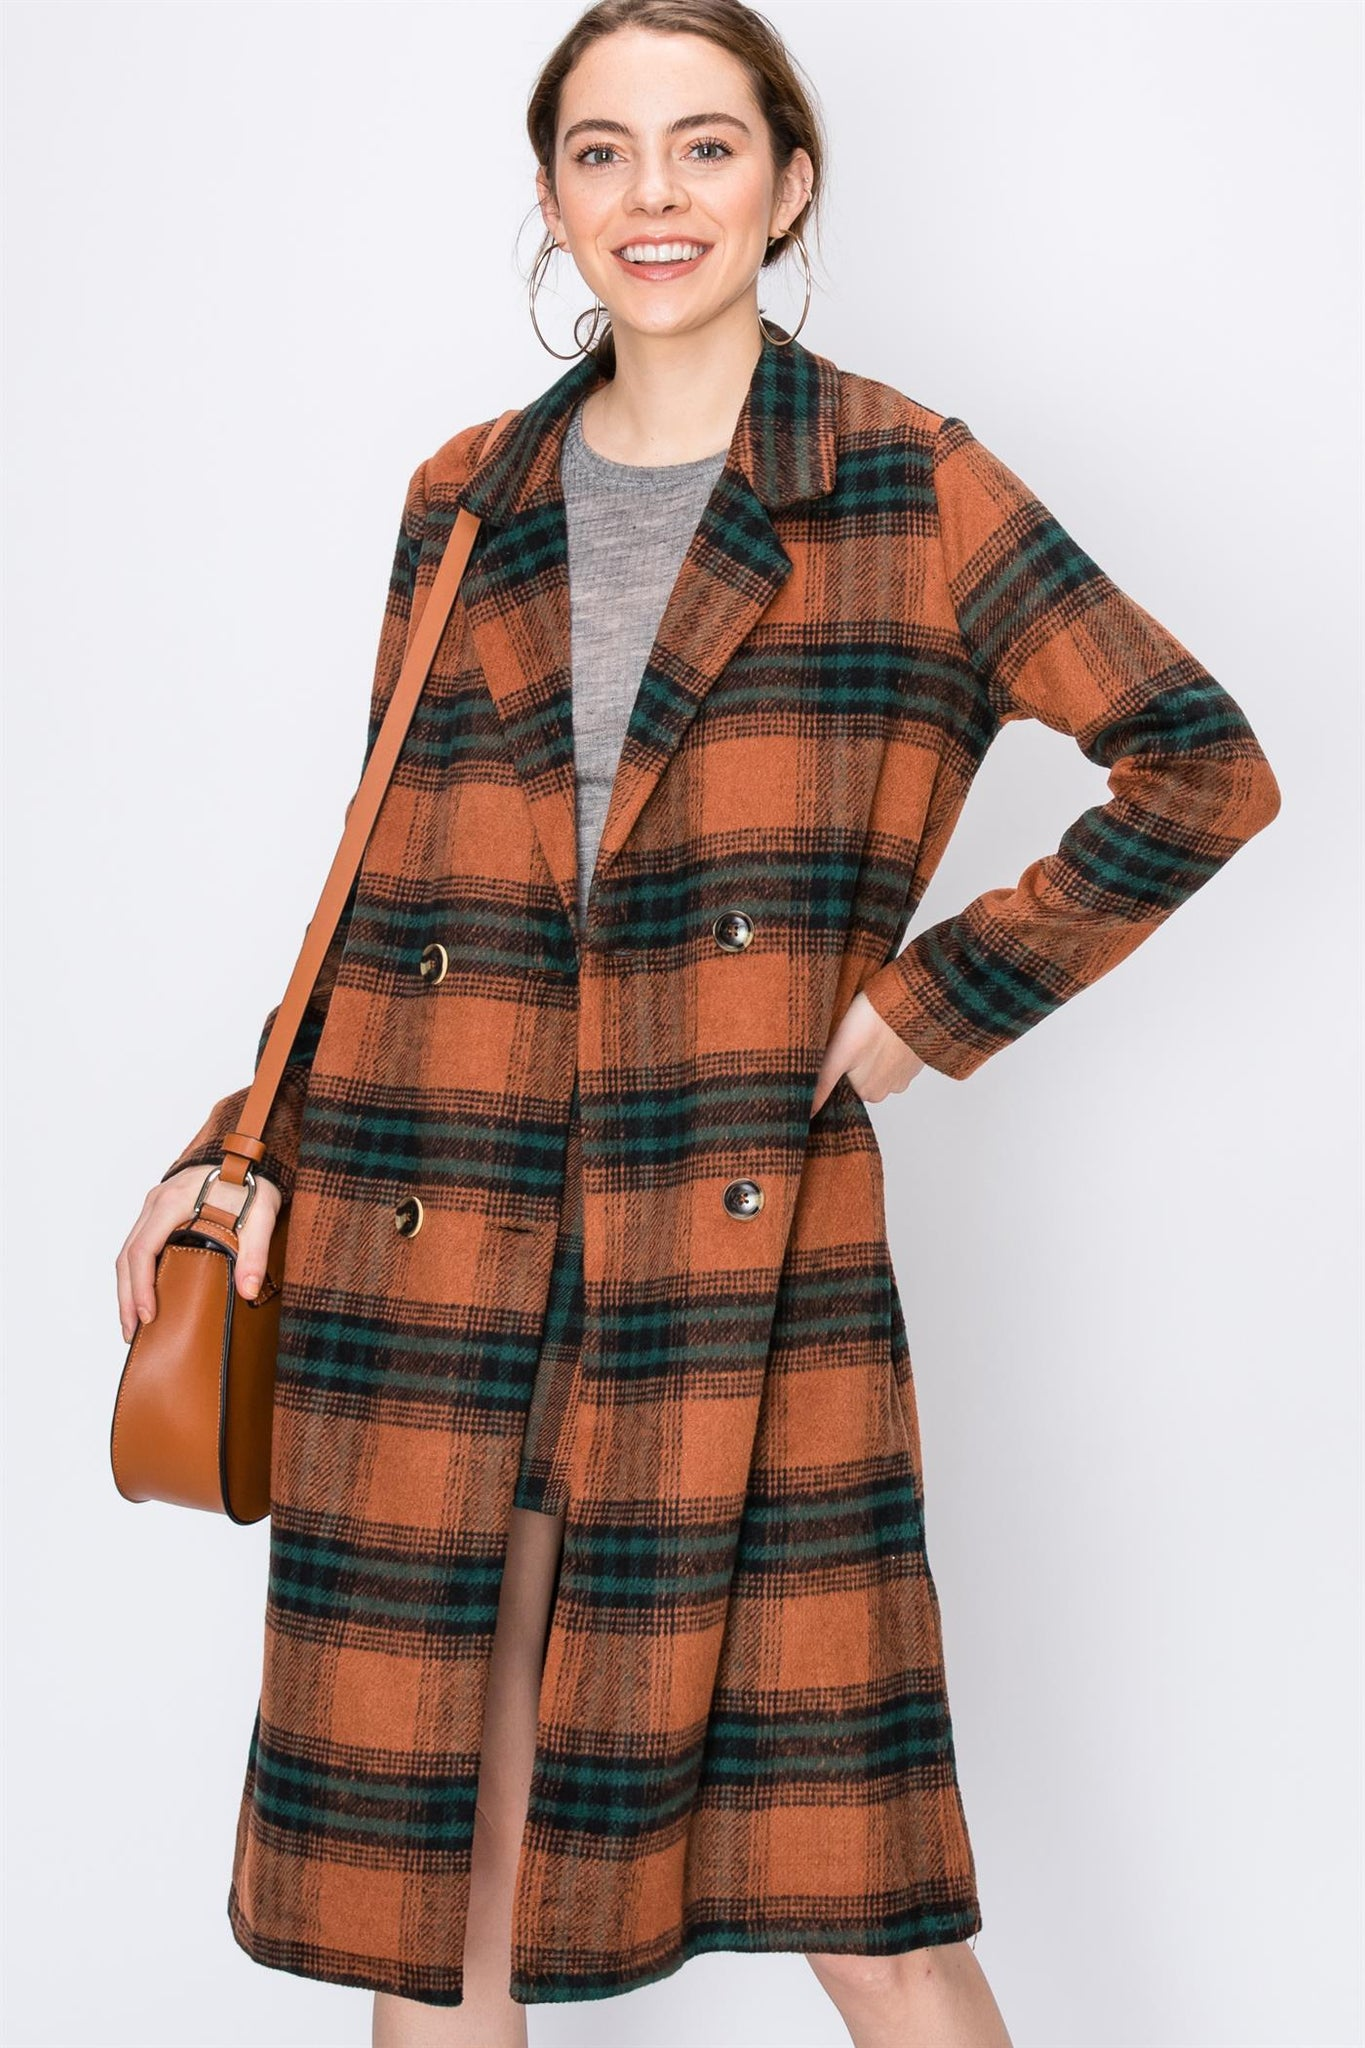 Coat, Classic, Vintage, Blazer, Jacket, Fall Outfit, Casual Wear, Fashion, Botton Down Coat, Outer Wear, Winter Outfit, Fashionable Outfit, Plaid